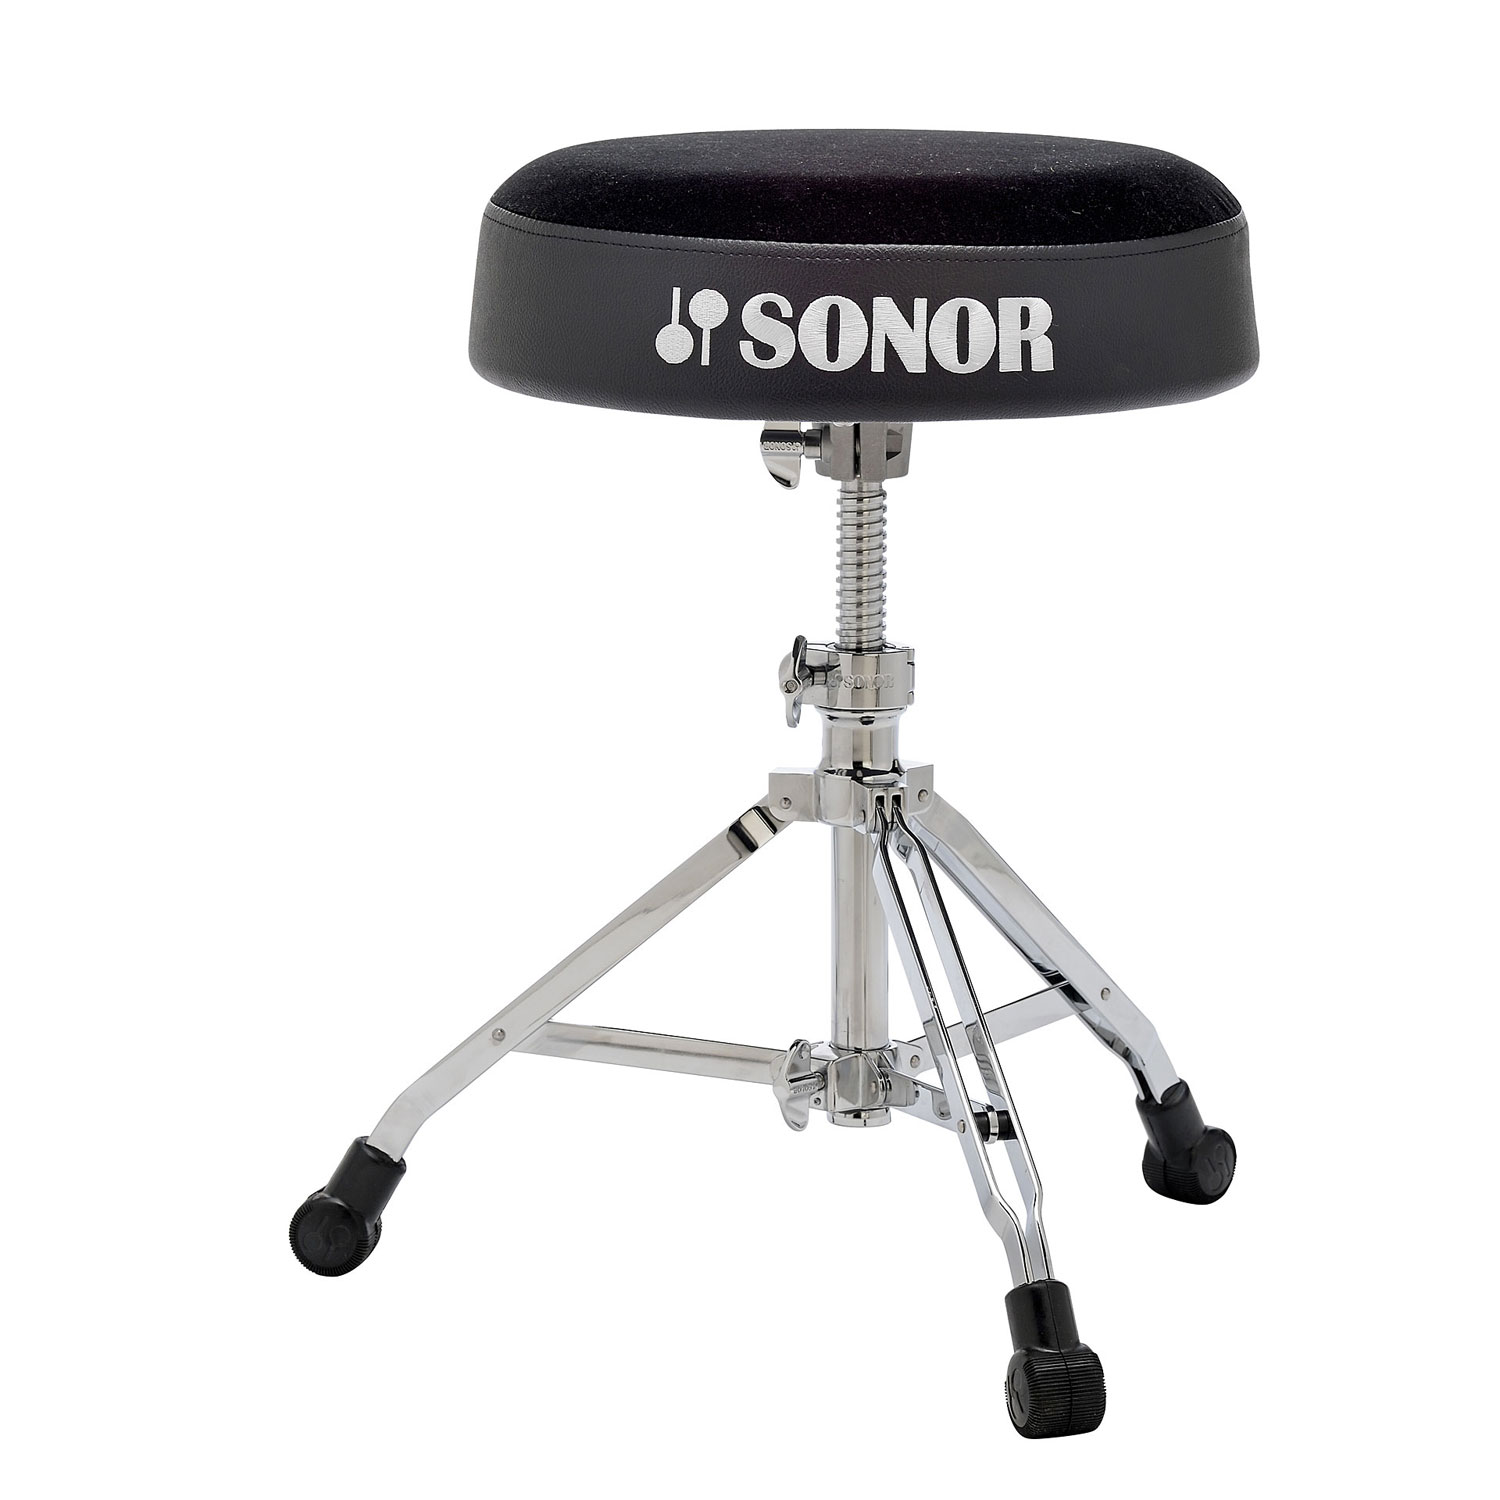 Sonor 6000 Series Round Top Throne